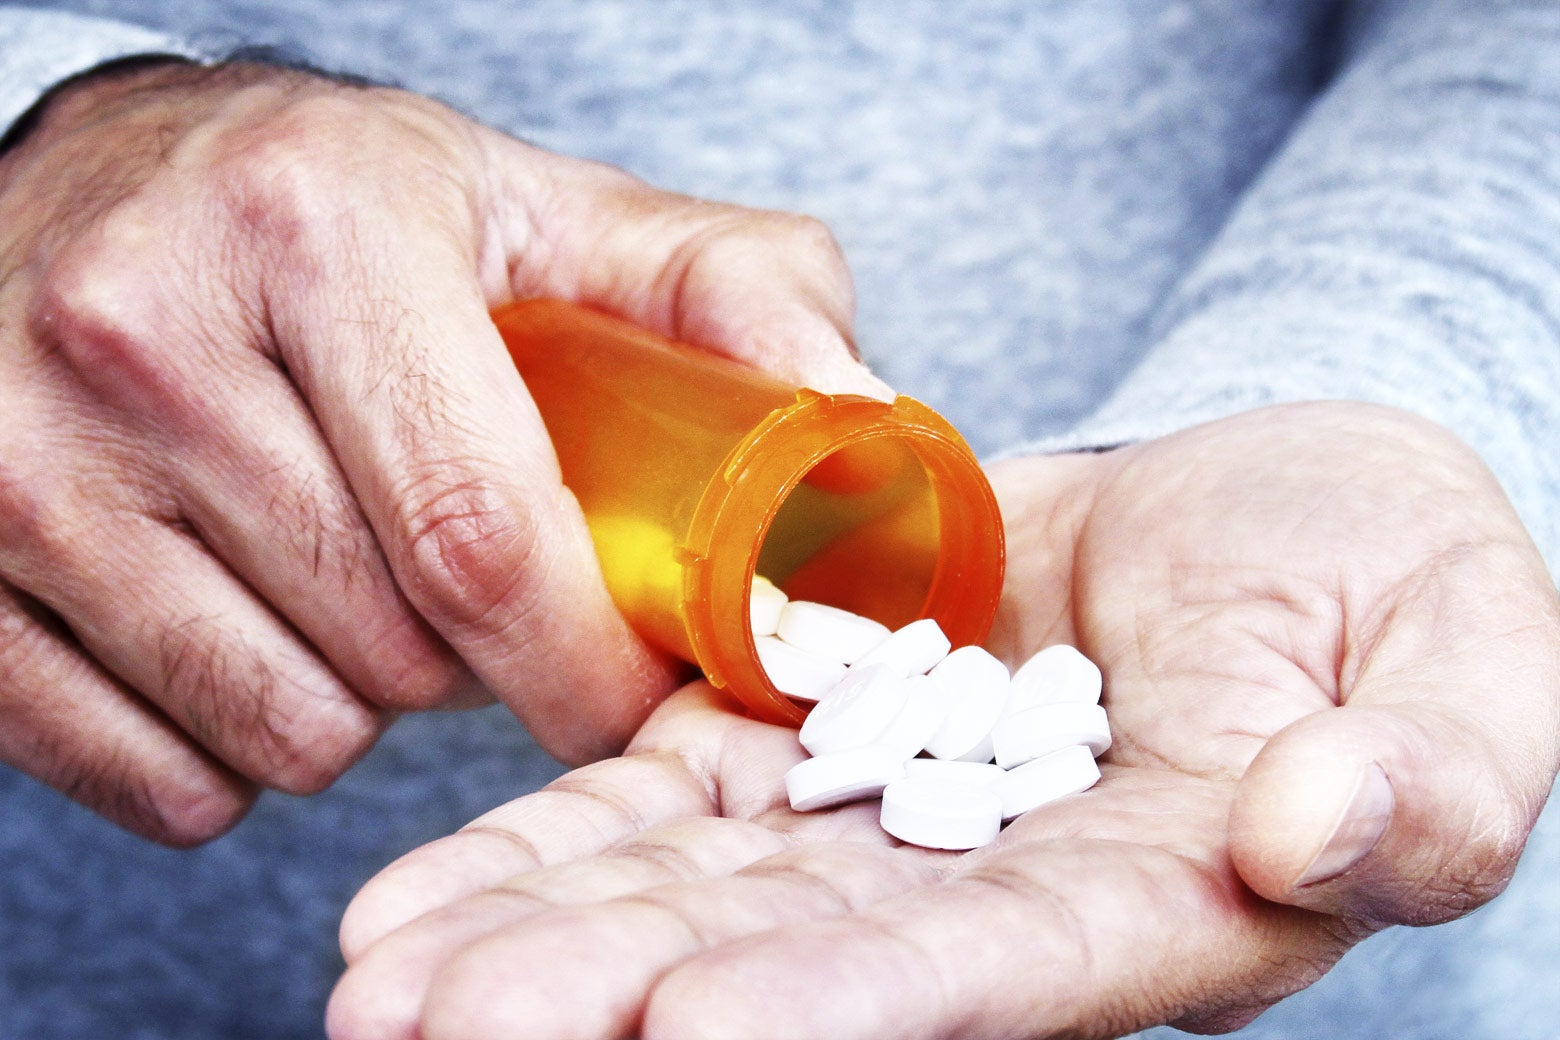 A man pours pills from a bottle into his hand.